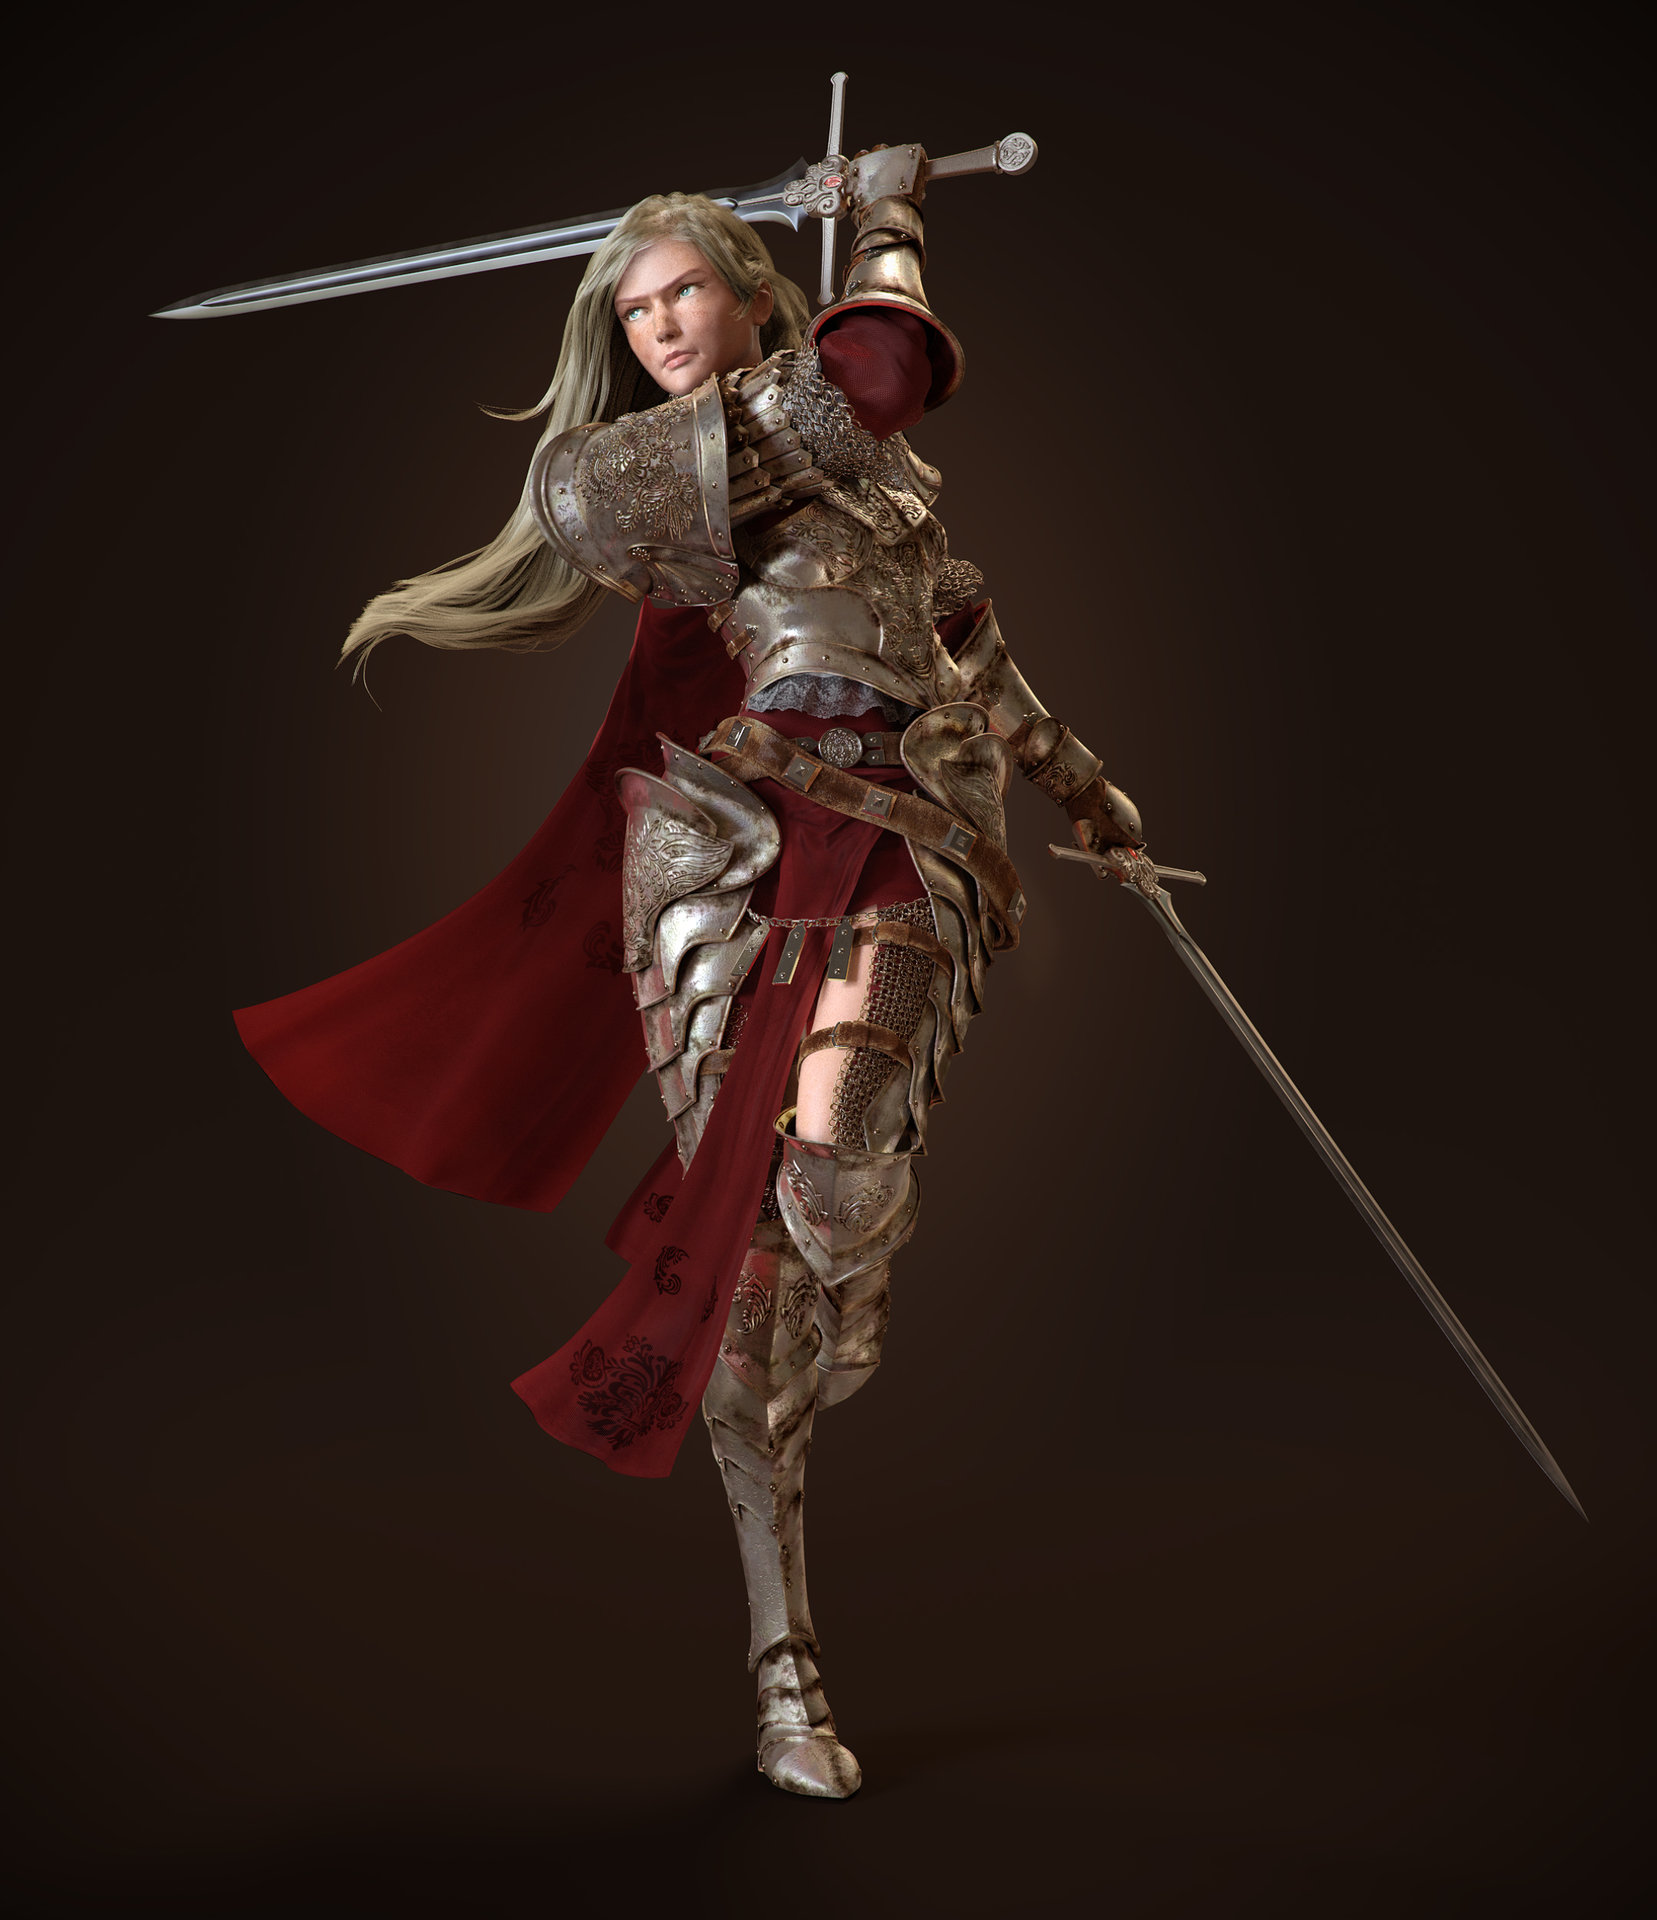 ArtStation - Female Kn...